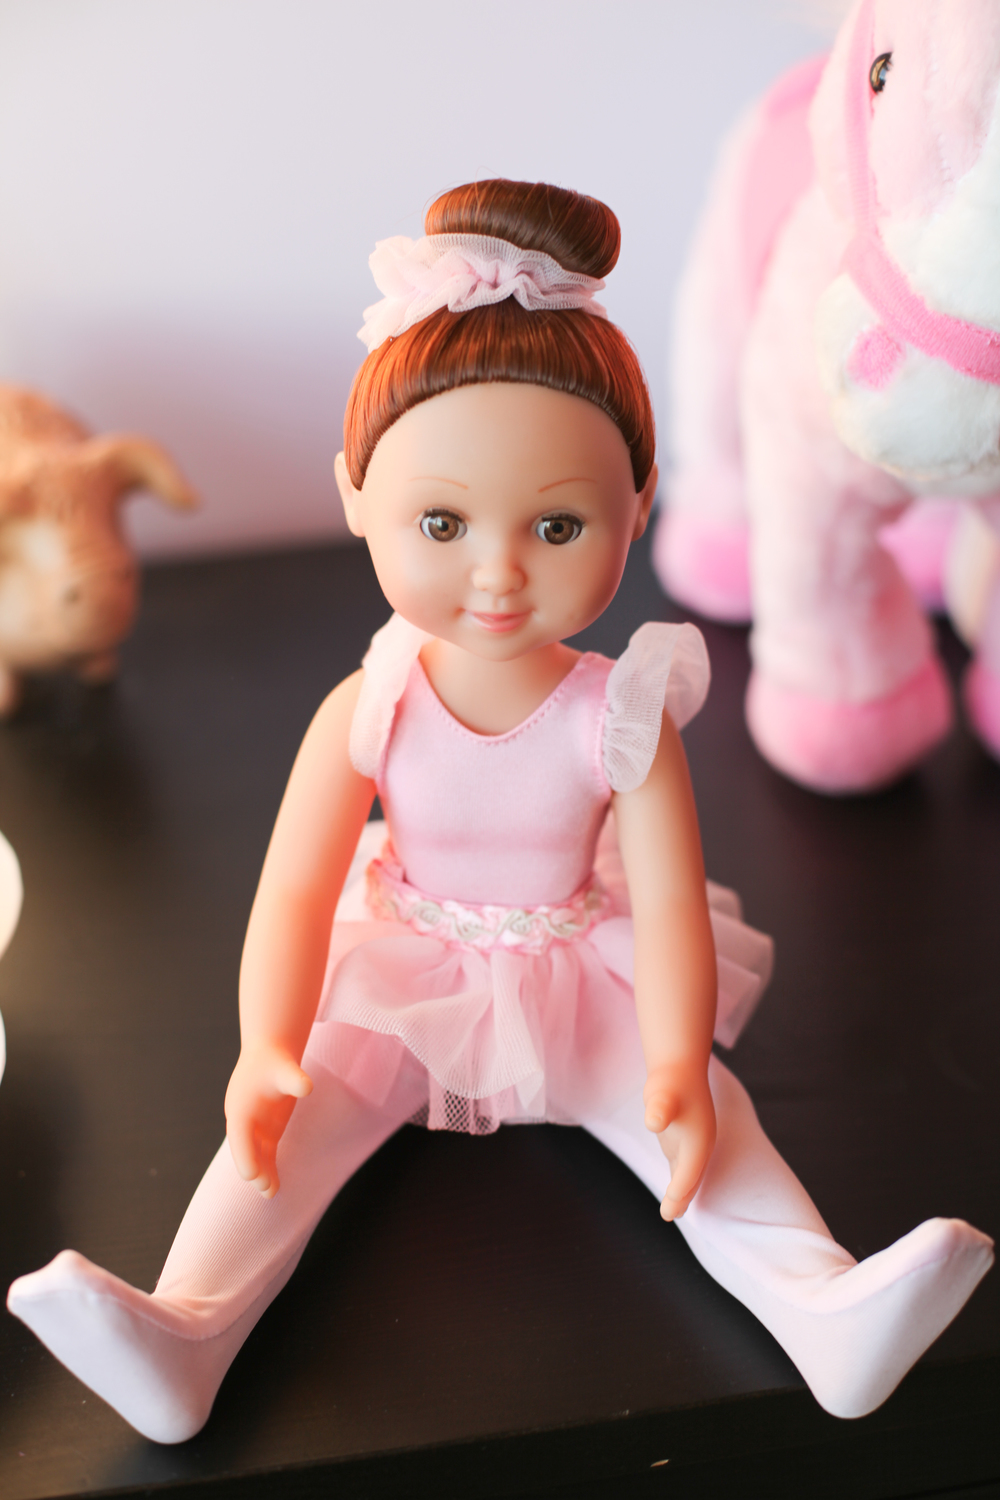 a pretty ballerina doll Autumn got for her birthday